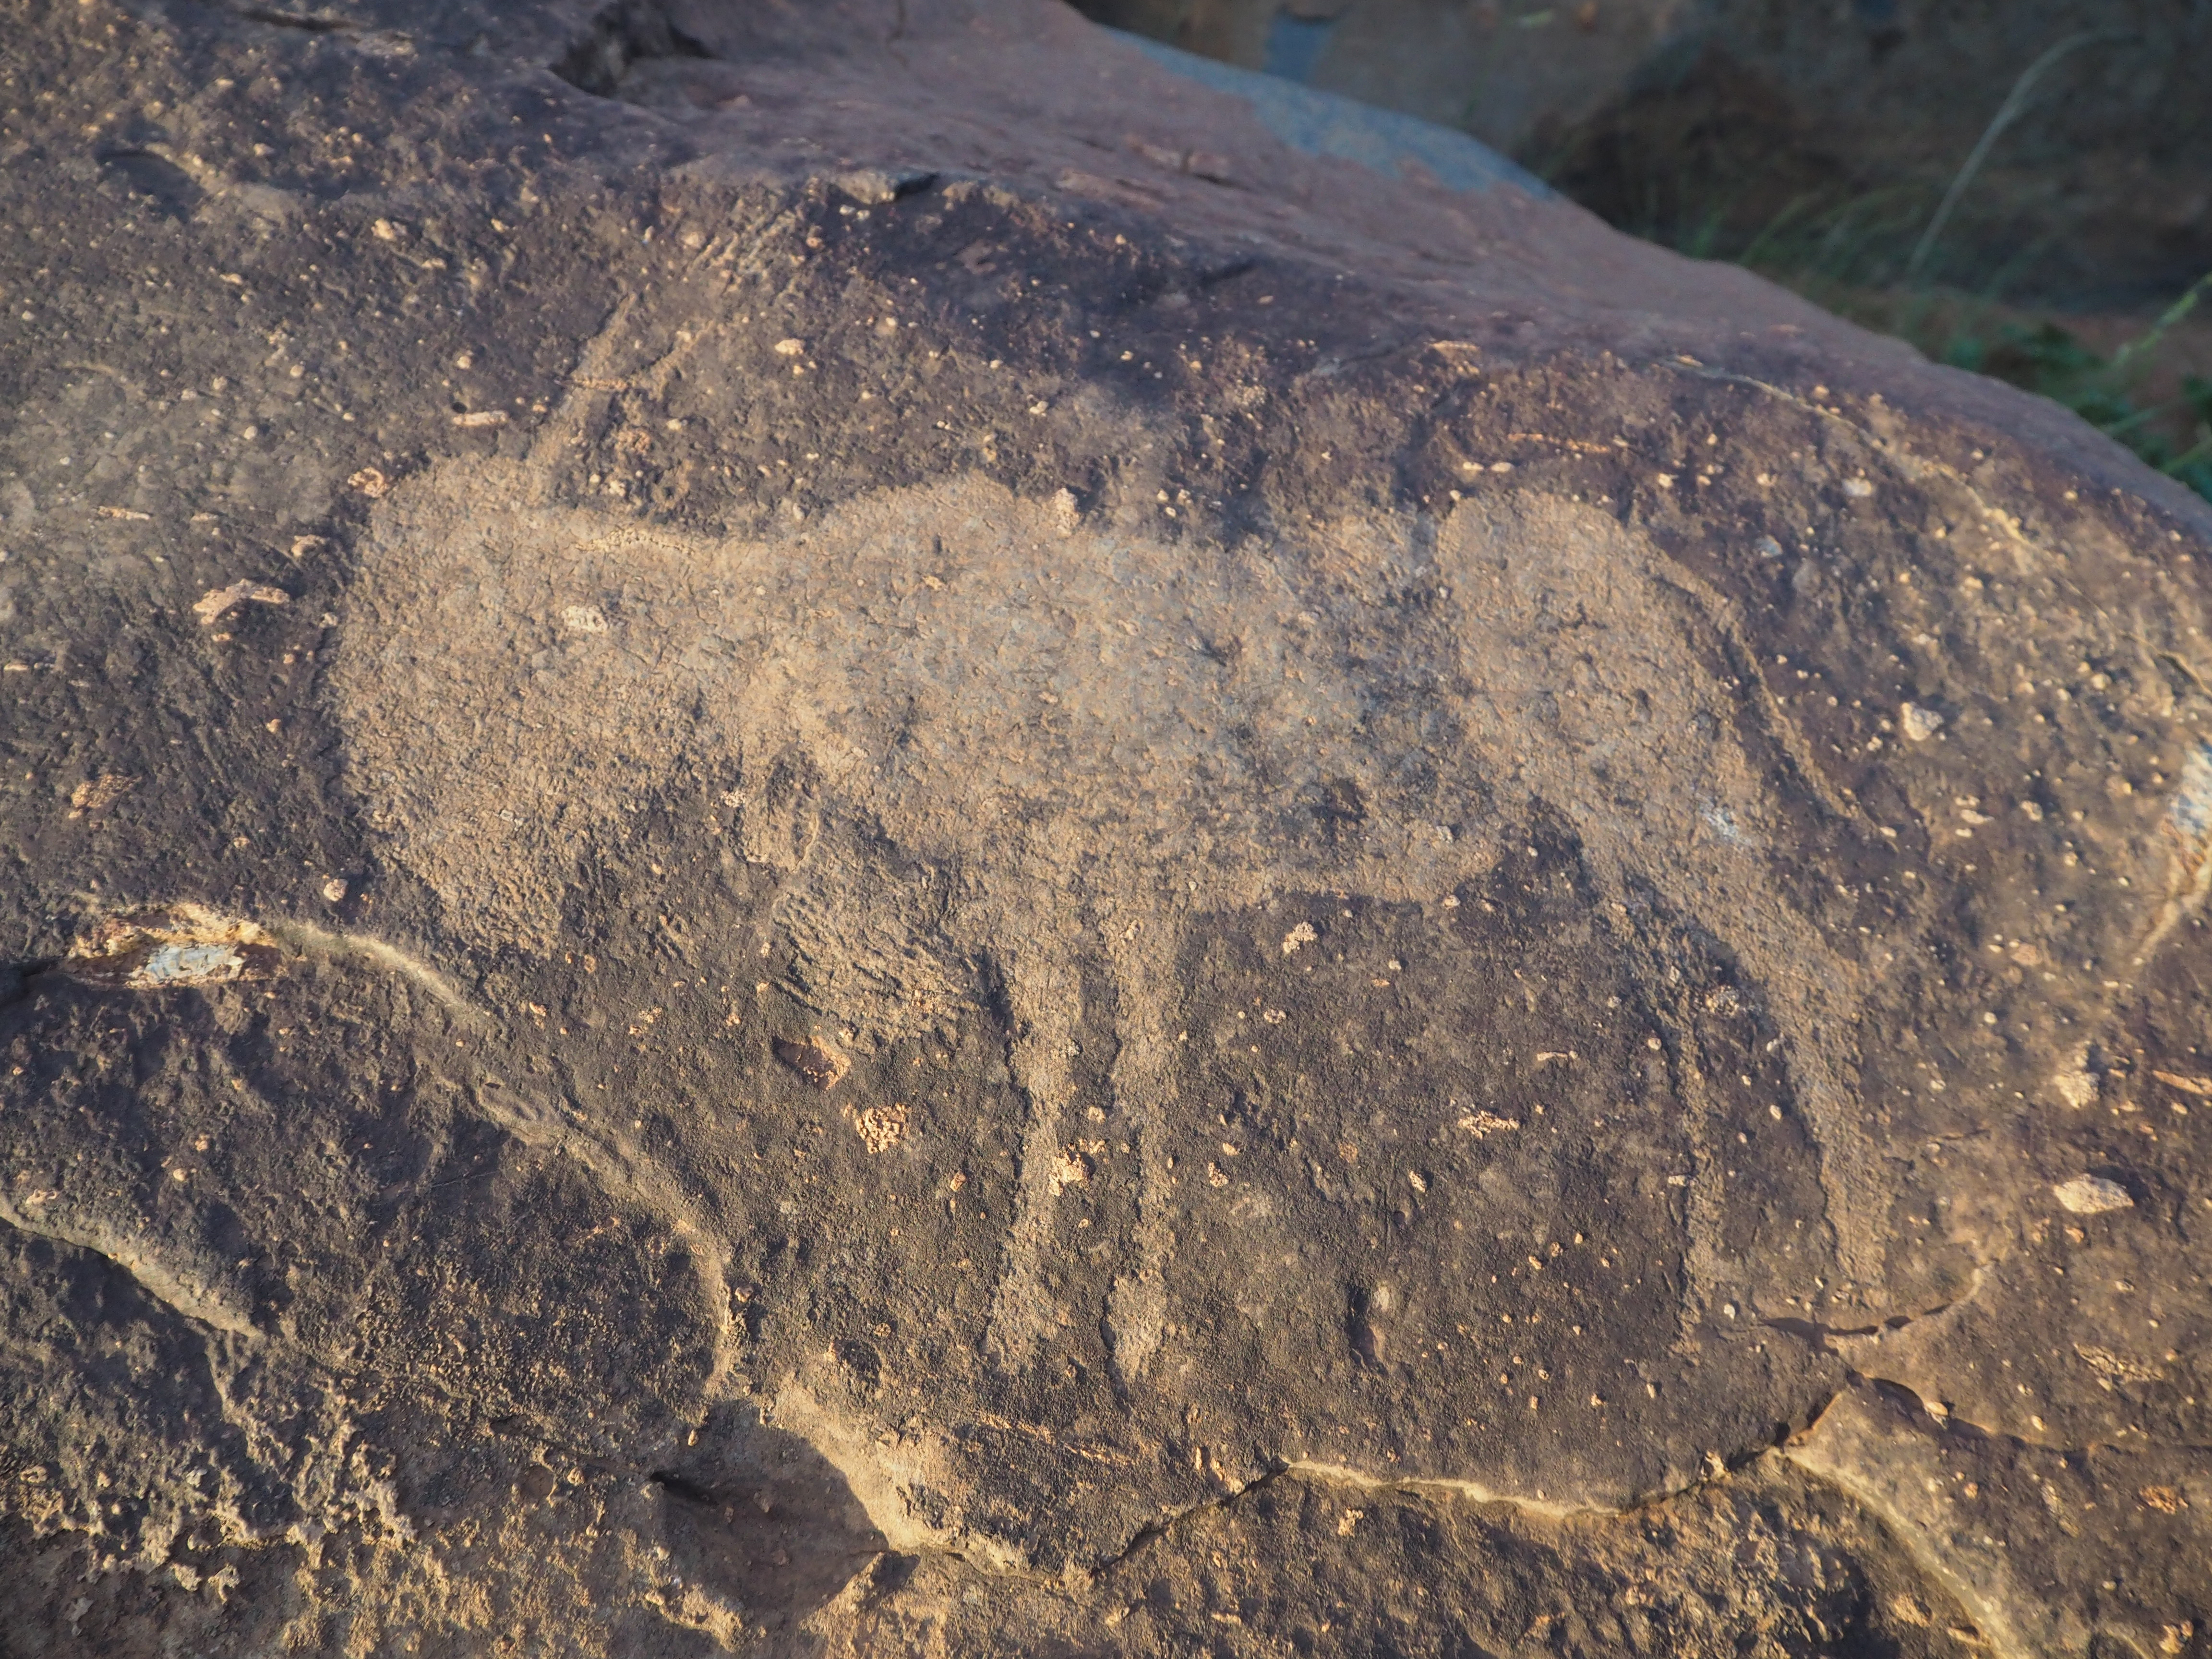 Mysterious prehistoric rock carvings discovered in world's largest asteroid crater